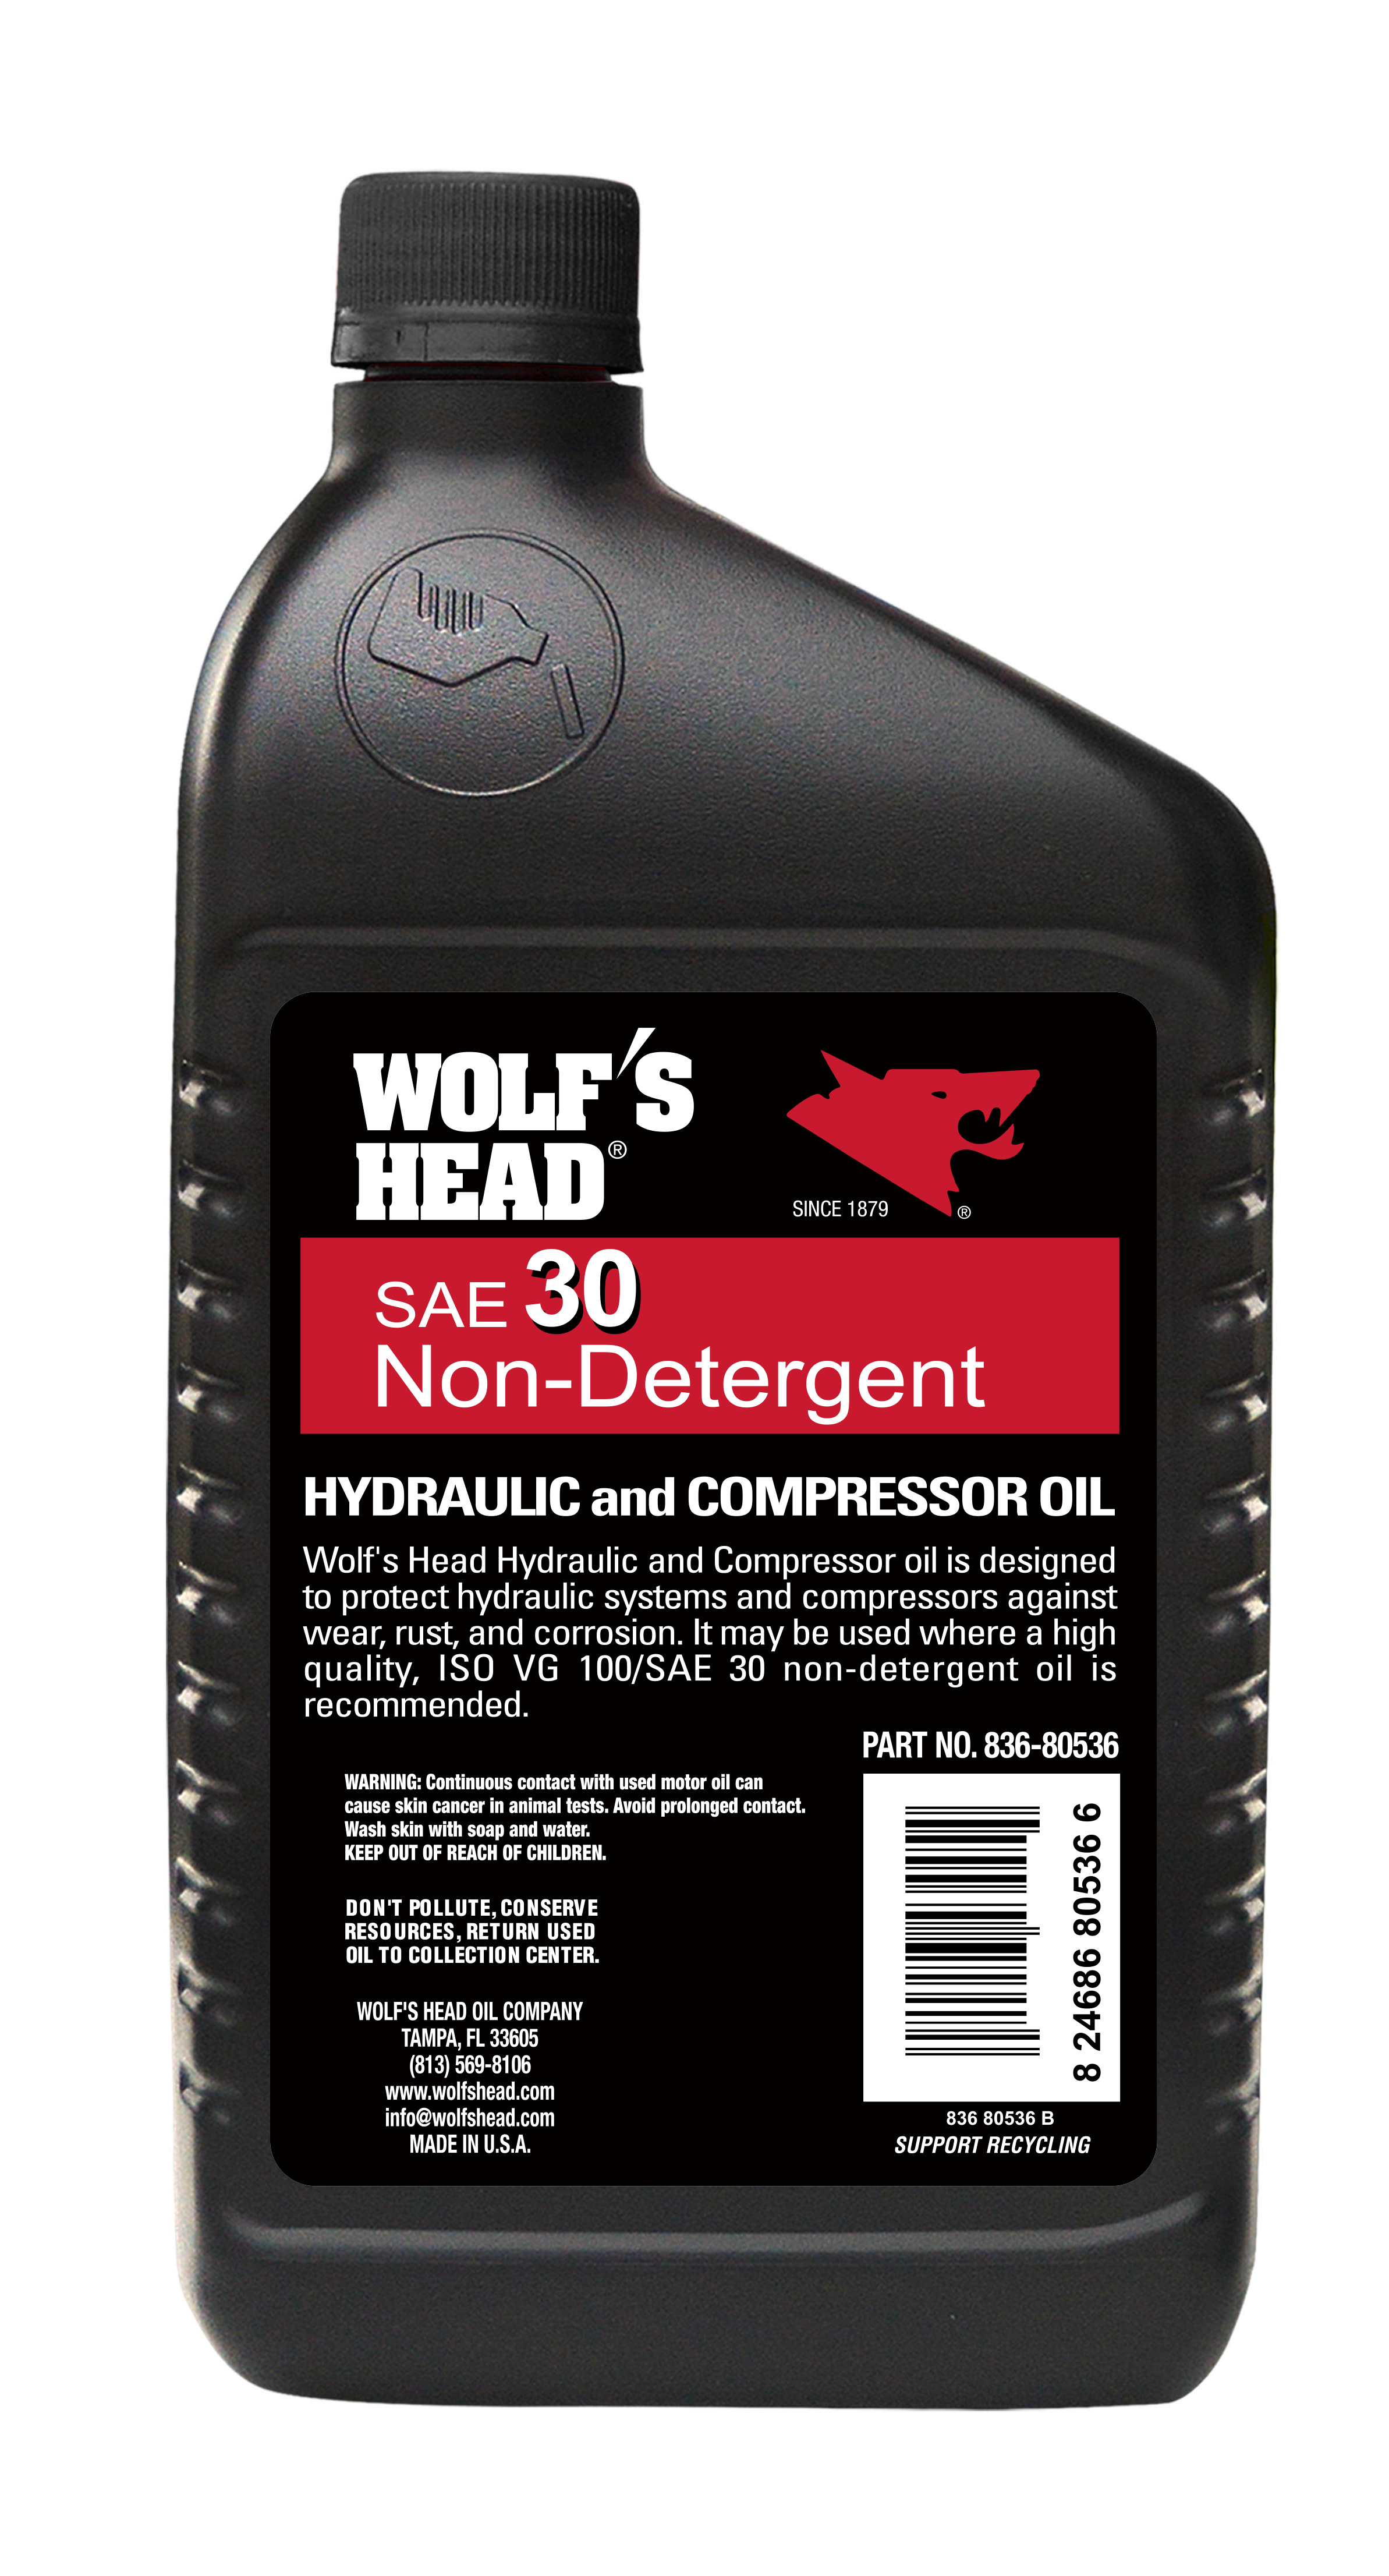 Sae engine oil specifications for Shell 30w non detergent motor oil